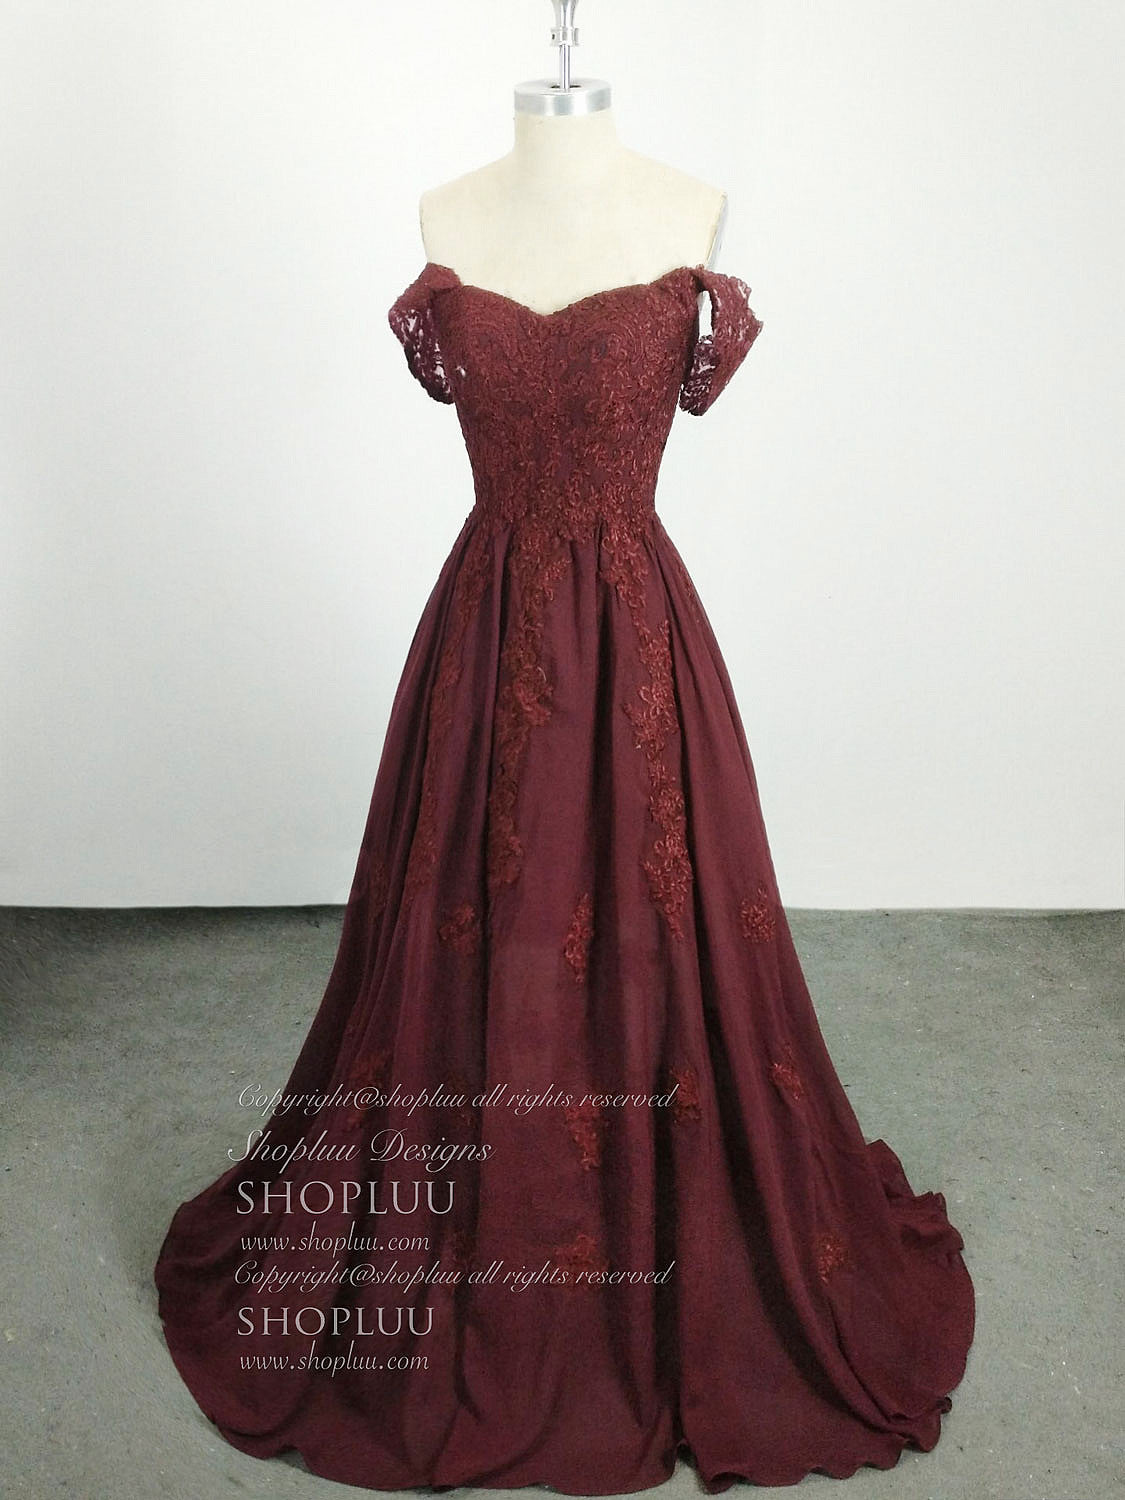 Burgundy lace chiffon off shoulder long prom dress, lace bridesmaid dress